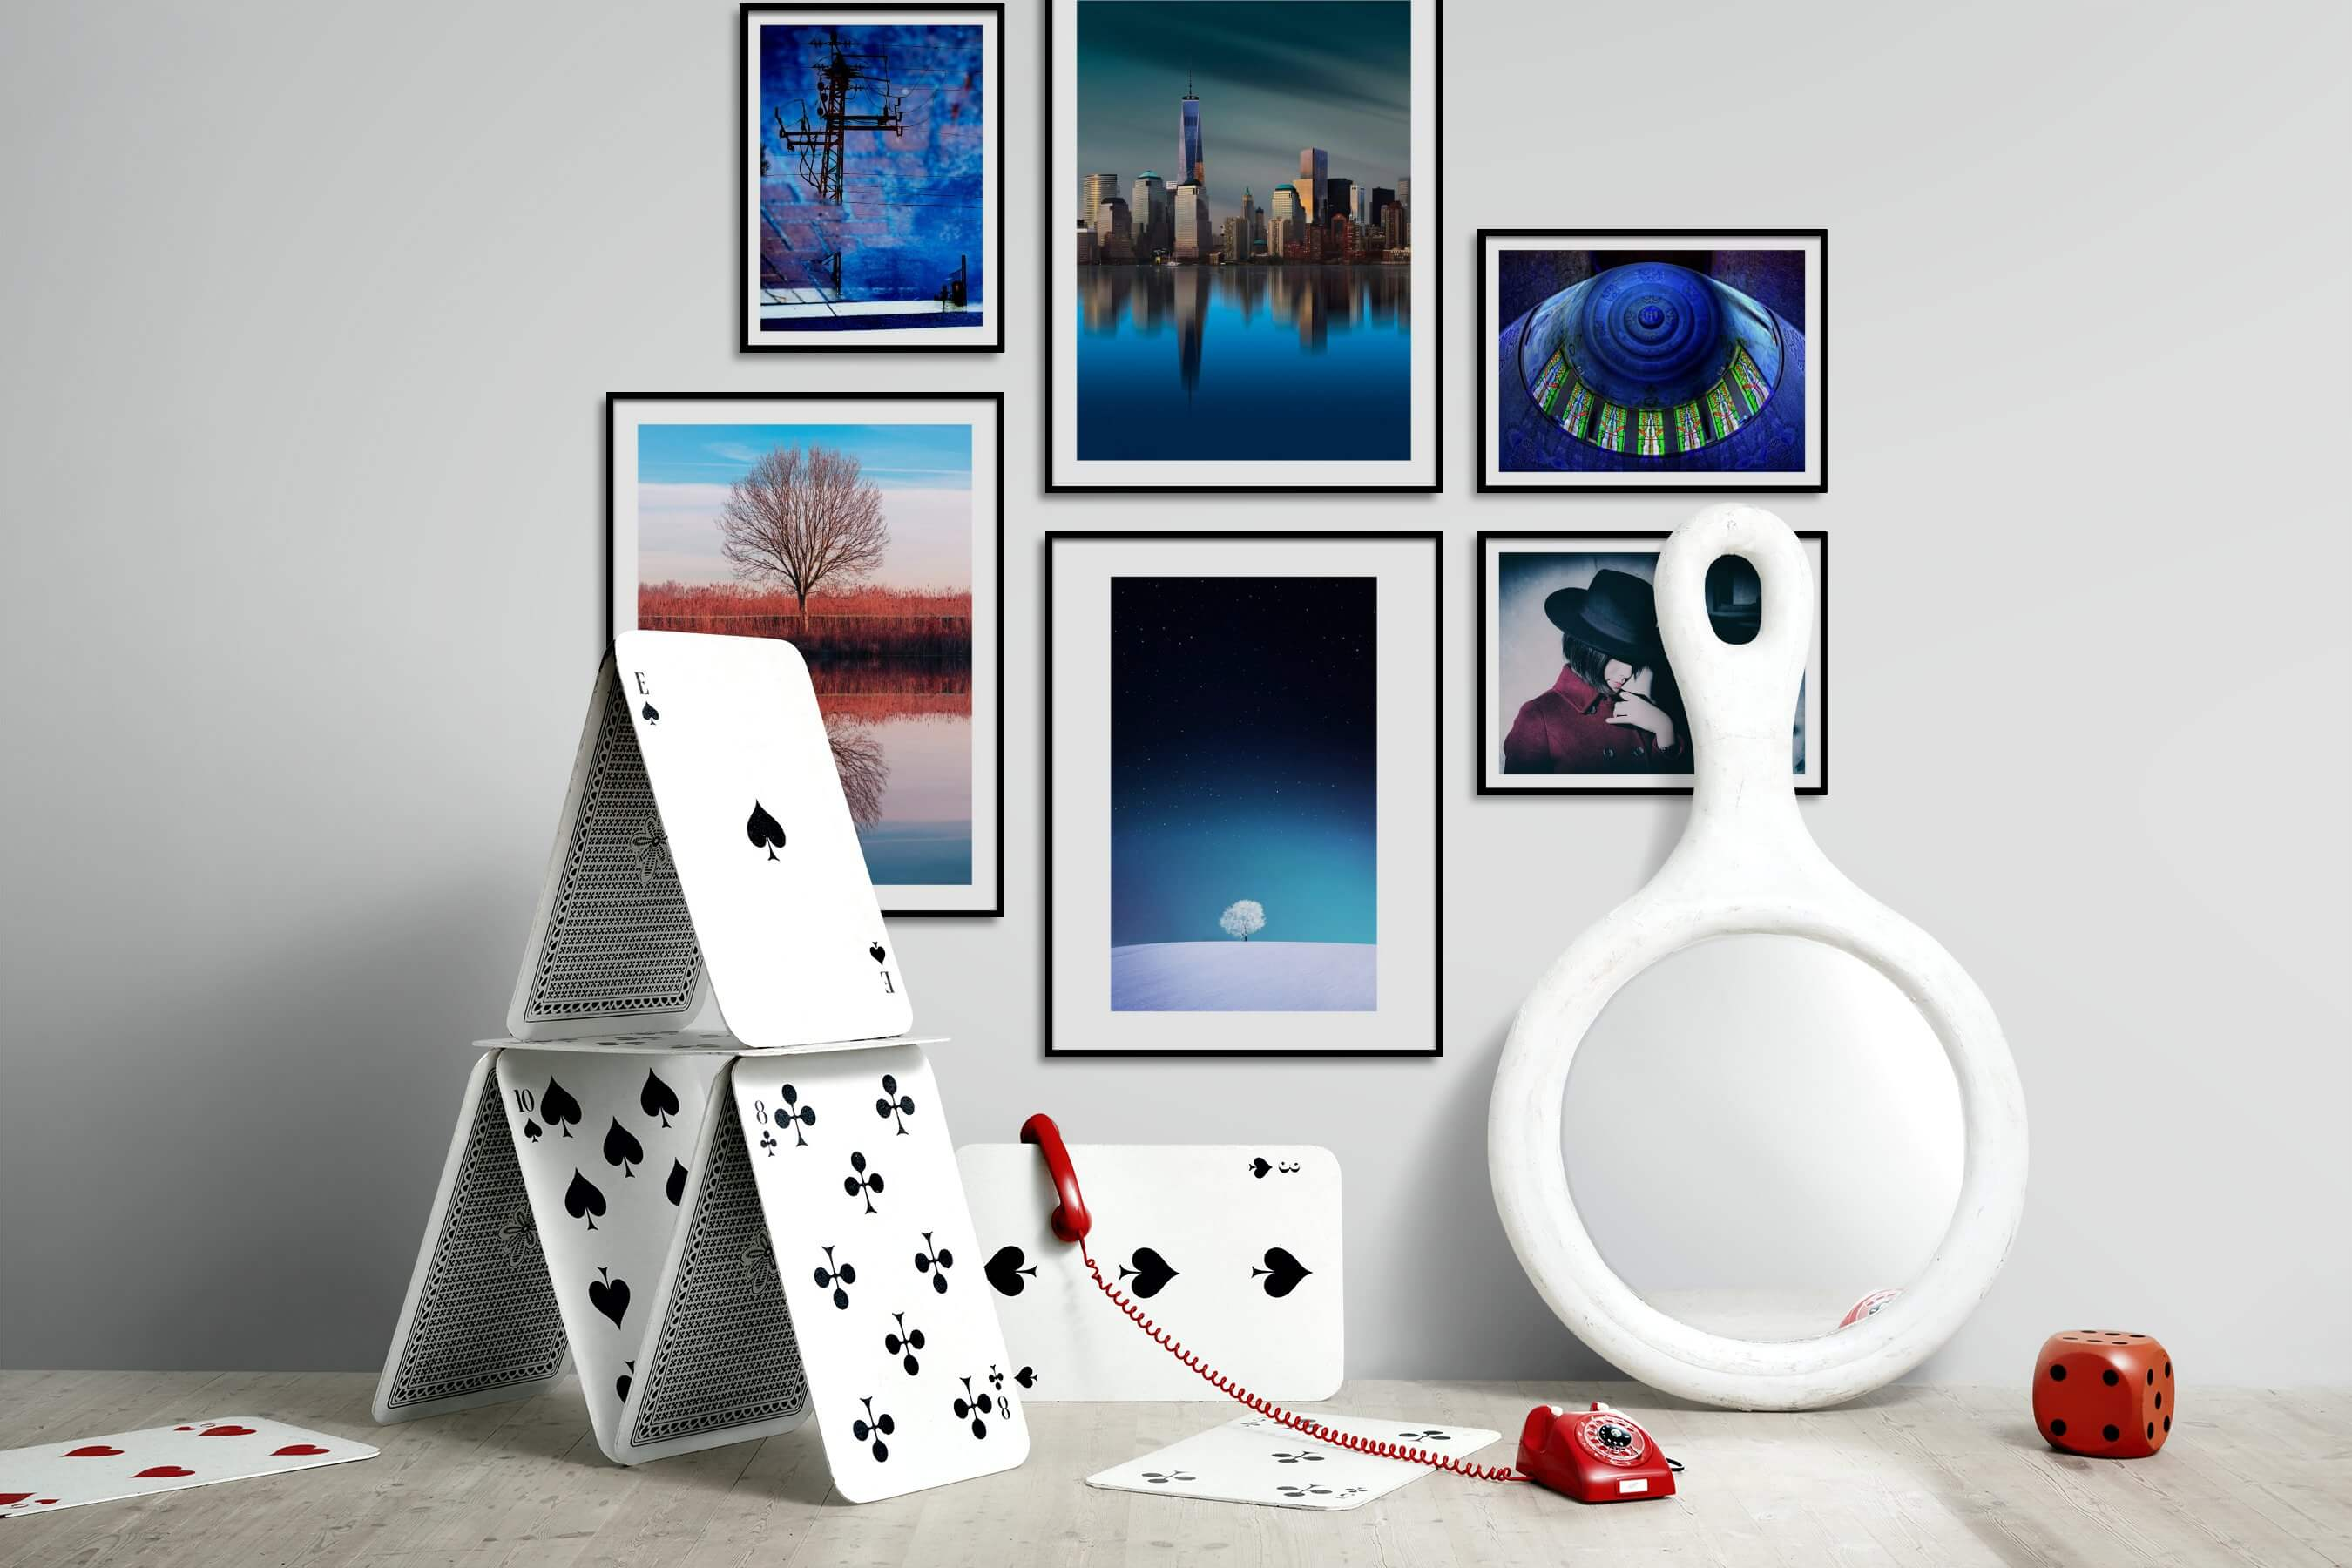 Gallery wall idea with six framed pictures arranged on a wall depicting For the Moderate, City Life, Americana, Country Life, For the Minimalist, Colorful, For the Maximalist, and Fashion & Beauty